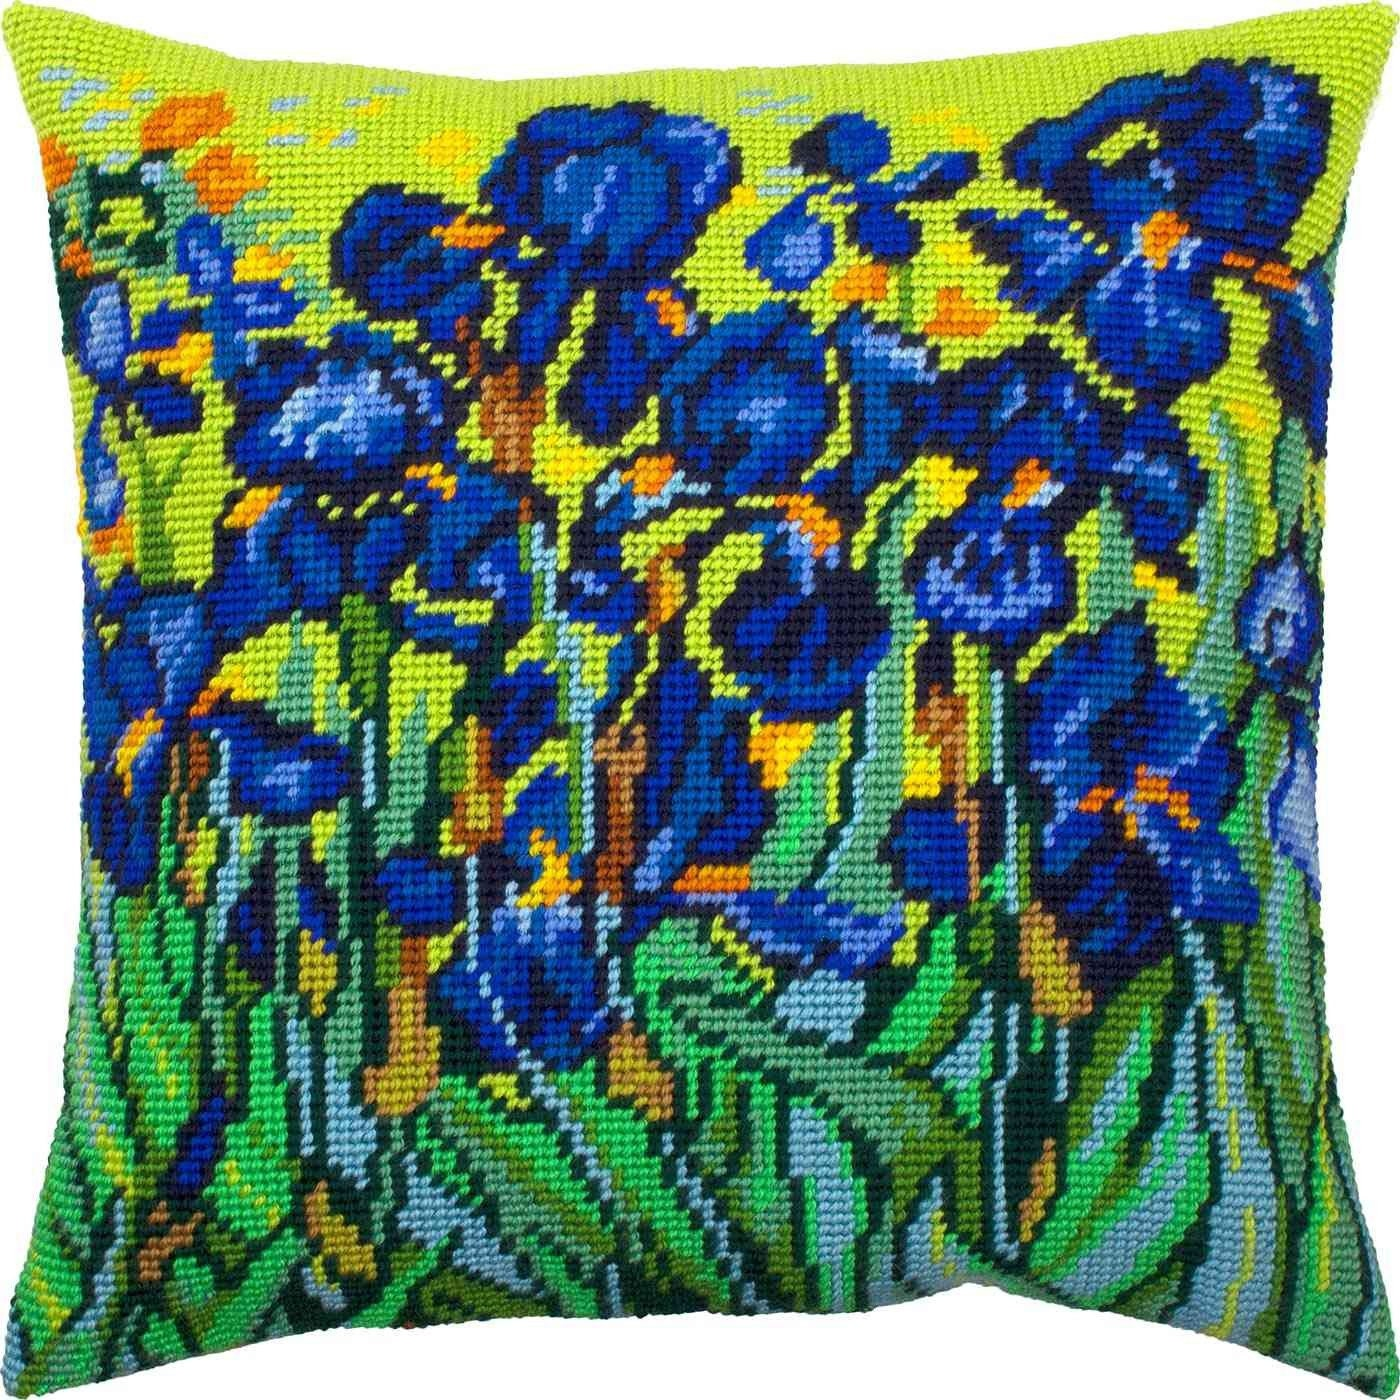 with Backing Needlepoint Kit Printed Tapestry Canvas European Quality Throw Pillow 16/×16 Inches London